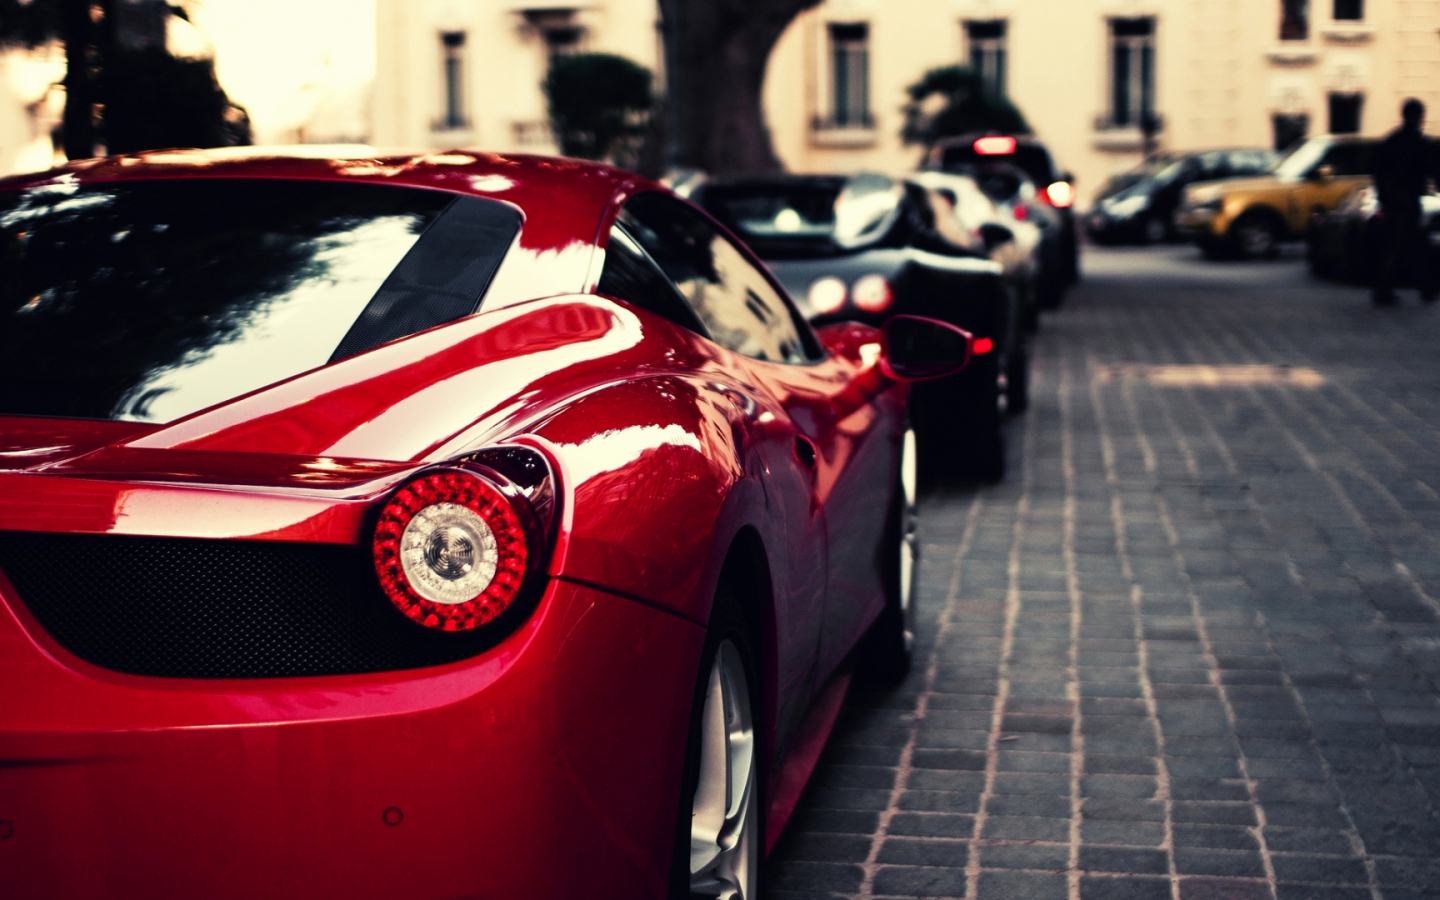 Free Download Hd Wallpapers For Pc 1080p Download Group Car